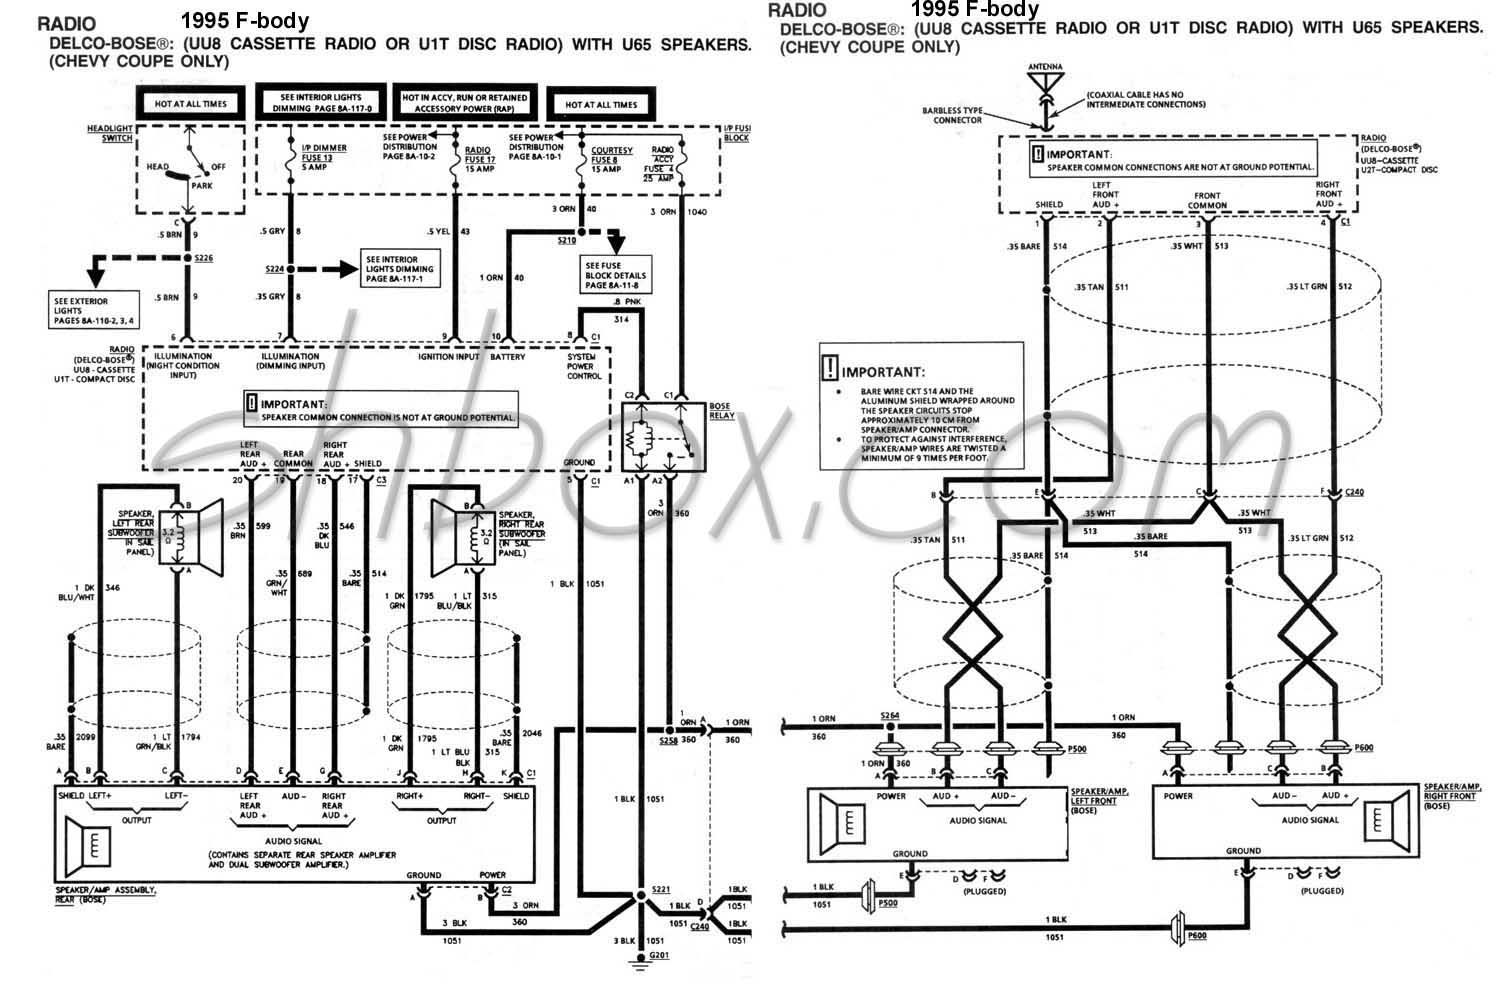 1968 Camaro wiring diagram